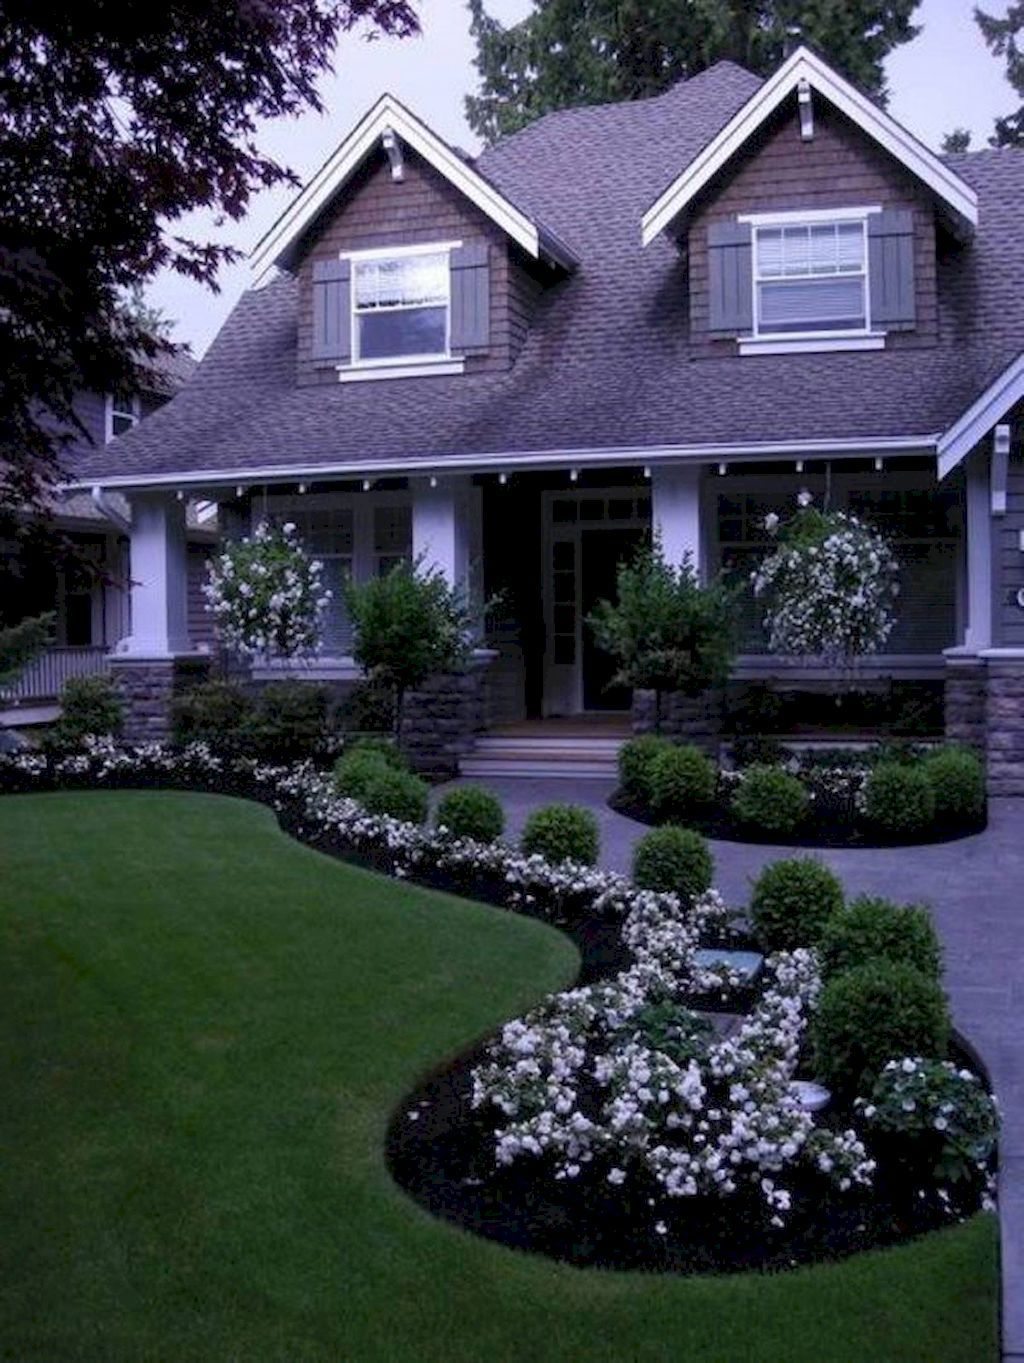 40 beautiful front yard landscaping ideas yard for Ideas for my front yard